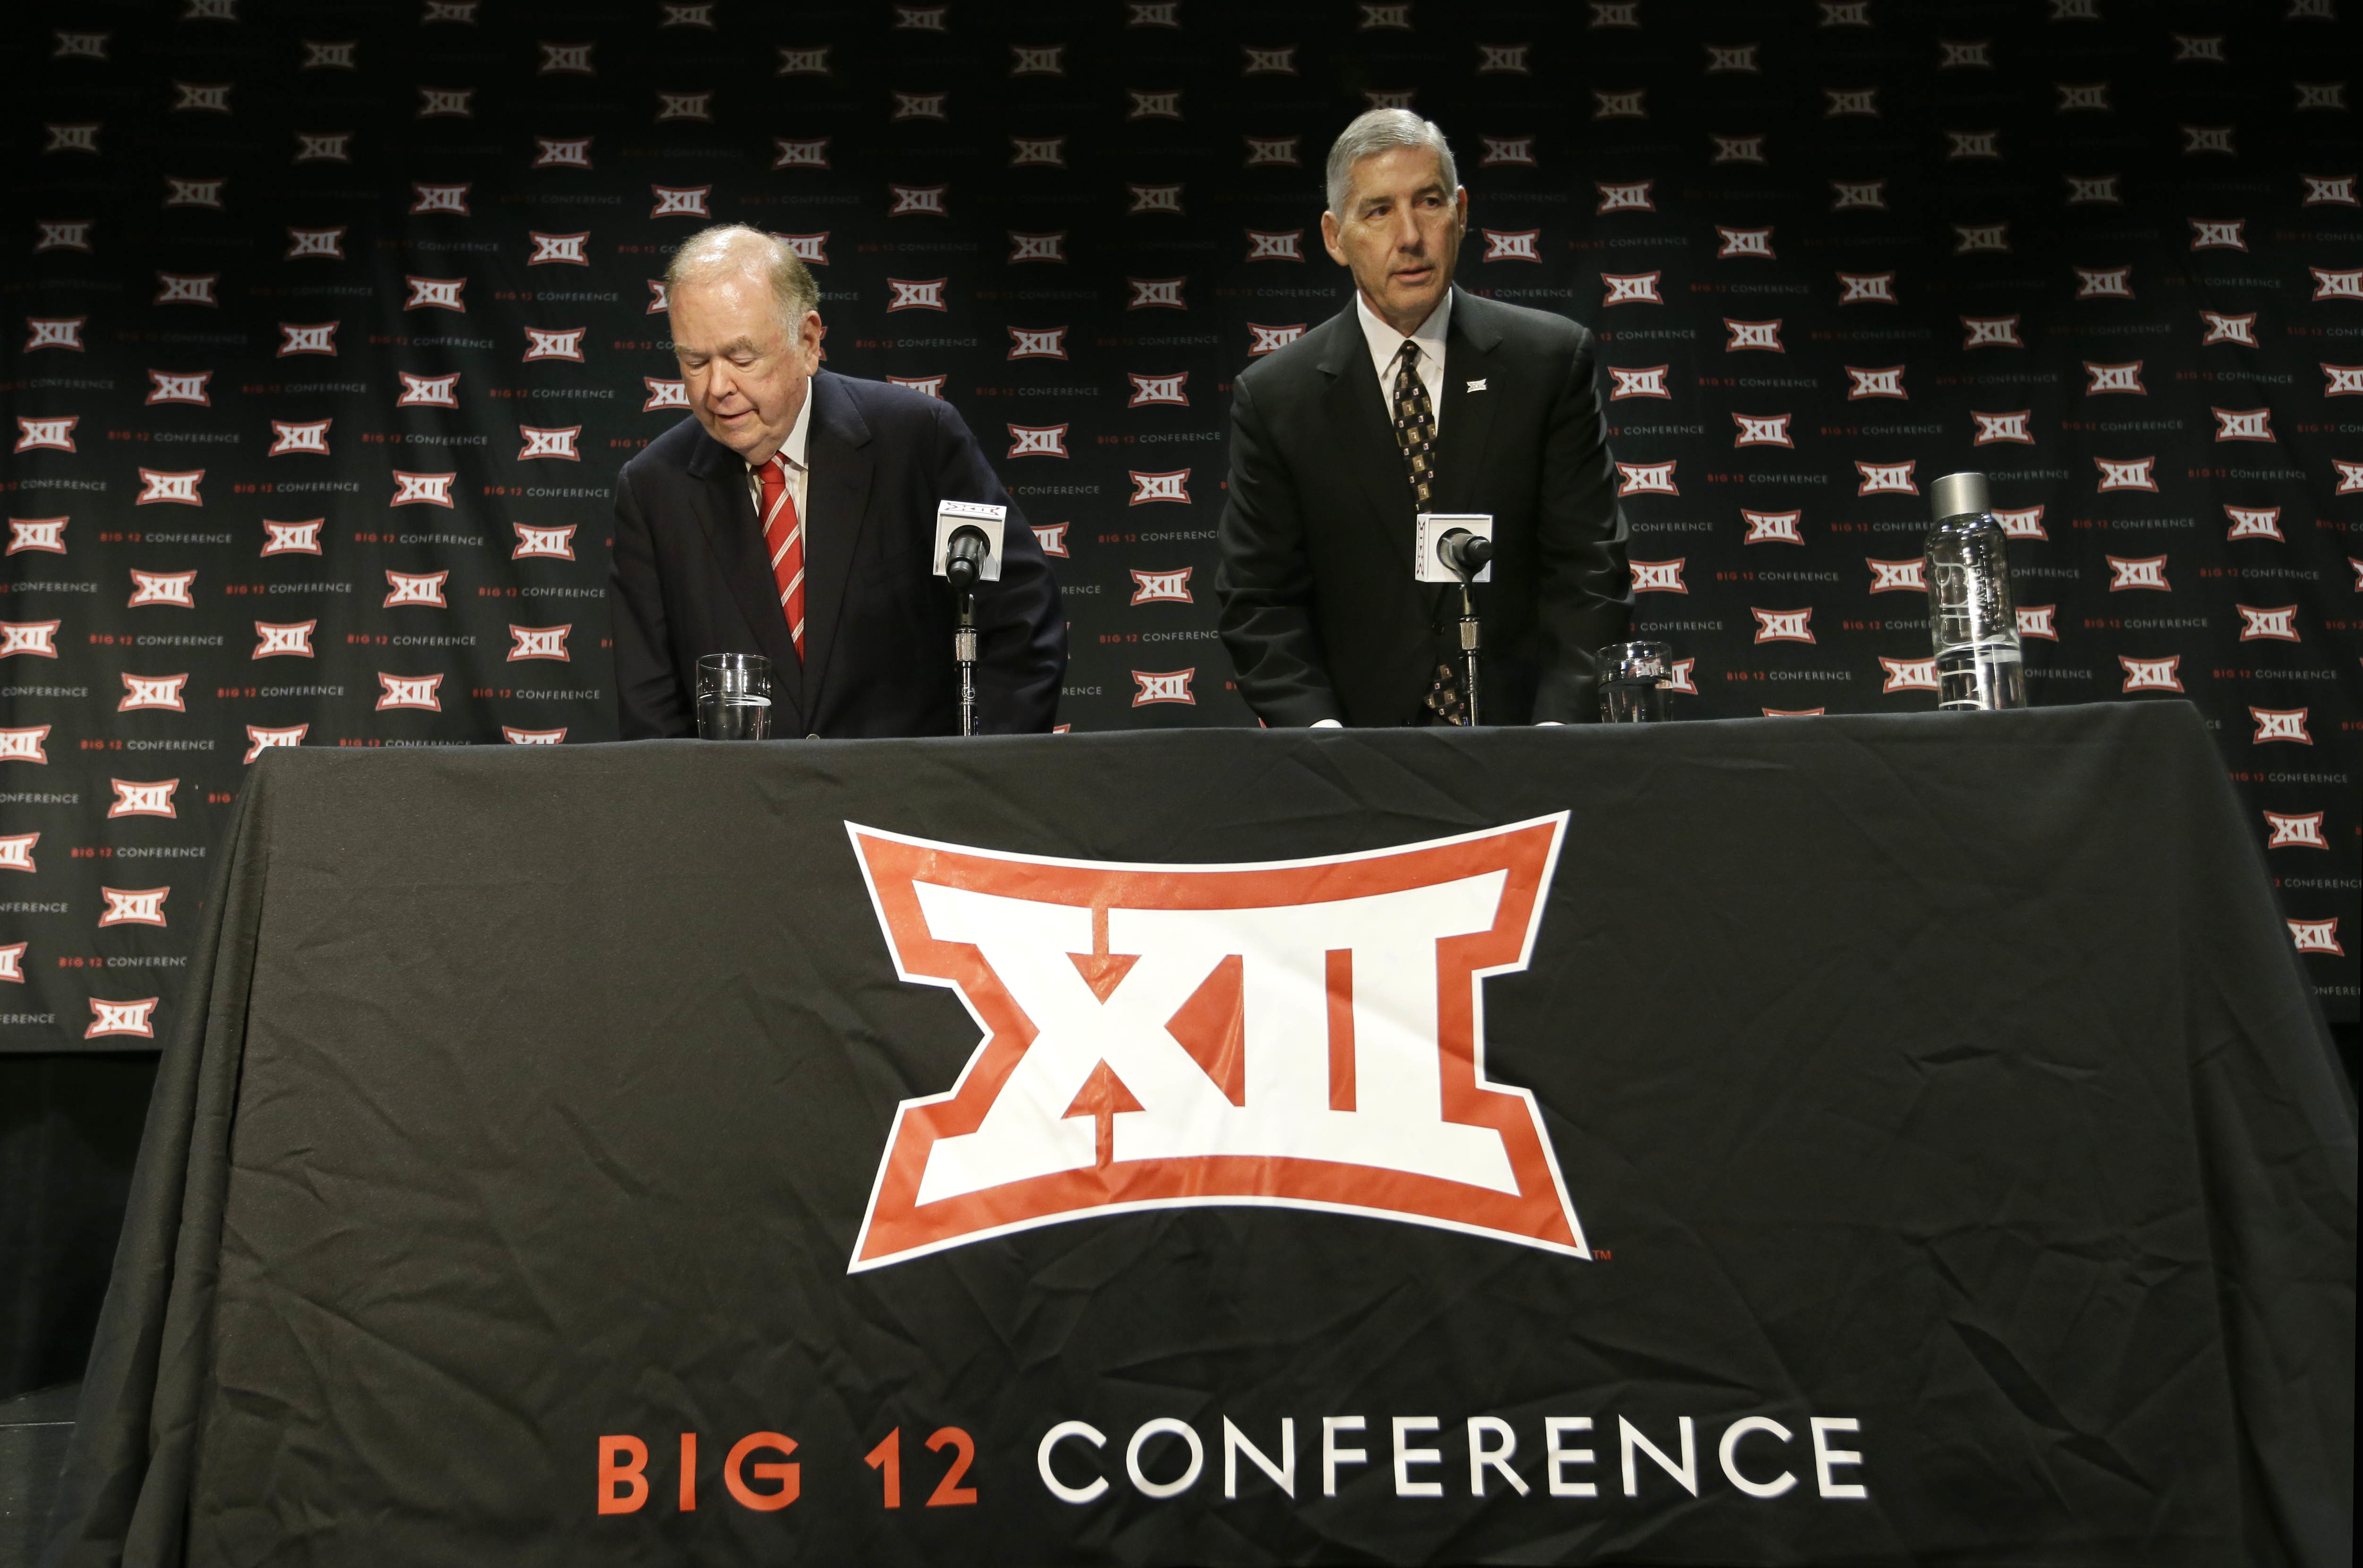 Big 12 Commissioner Bob Bowlsby, right, and Oklahoma President David Boren take their seat to speak to reporter after The Big 12 Conference meeting in Grapevine, Texas, Monday, Oct. 17, 2016. The Big 12 Conference has decided against expansion from its cu